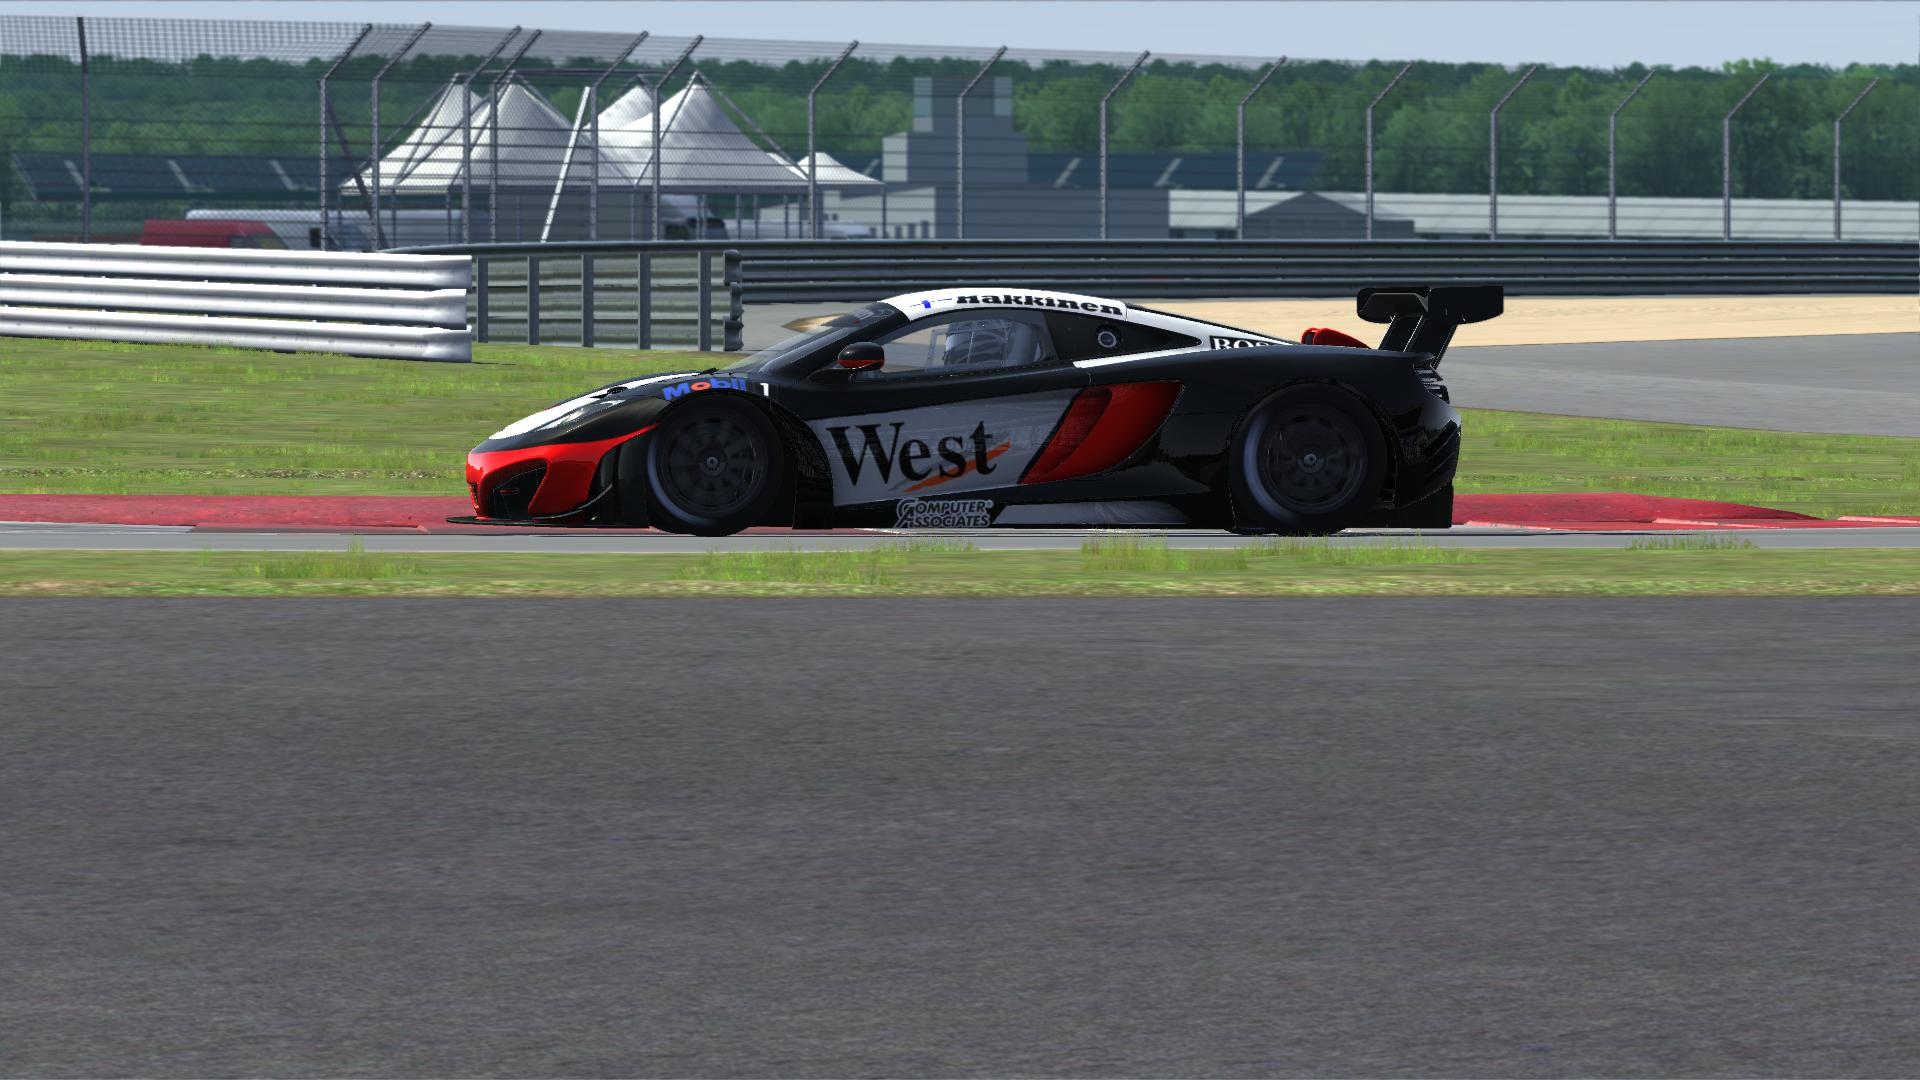 Skins - 1998 West Mclaren Mercedes - MP4-12C GT3 Skin | RaceDepartment